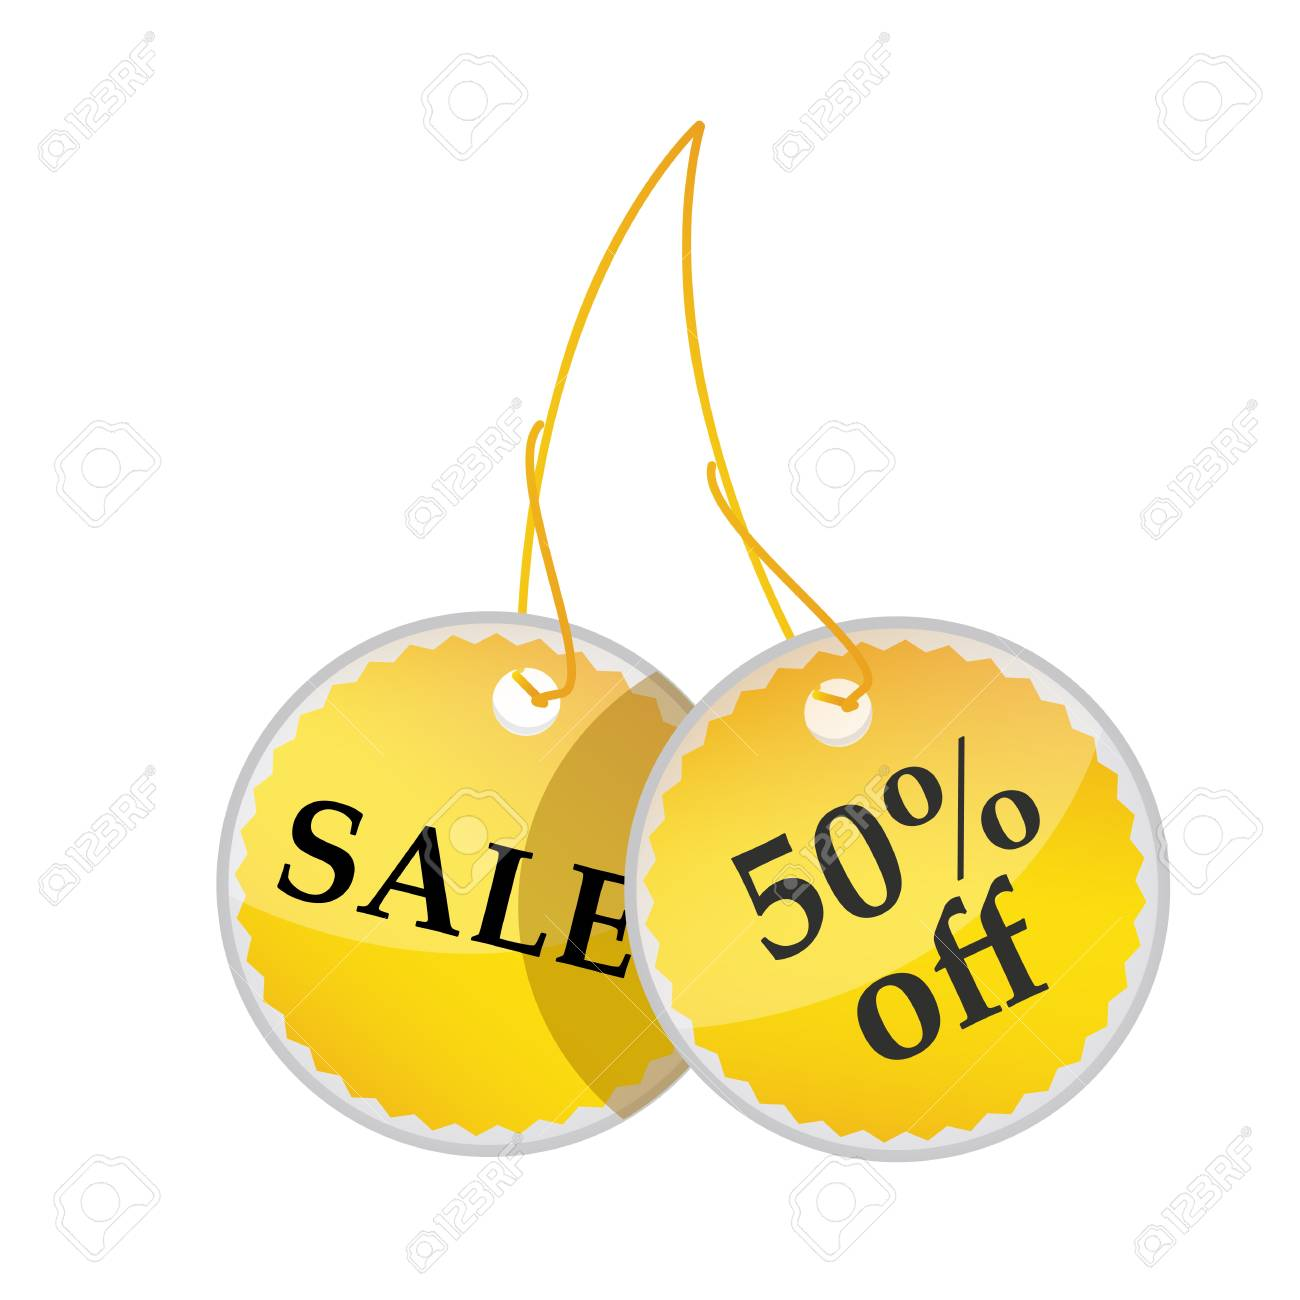 illustration of tags with sale and 50% off text on white background Stock Photo - 8017940